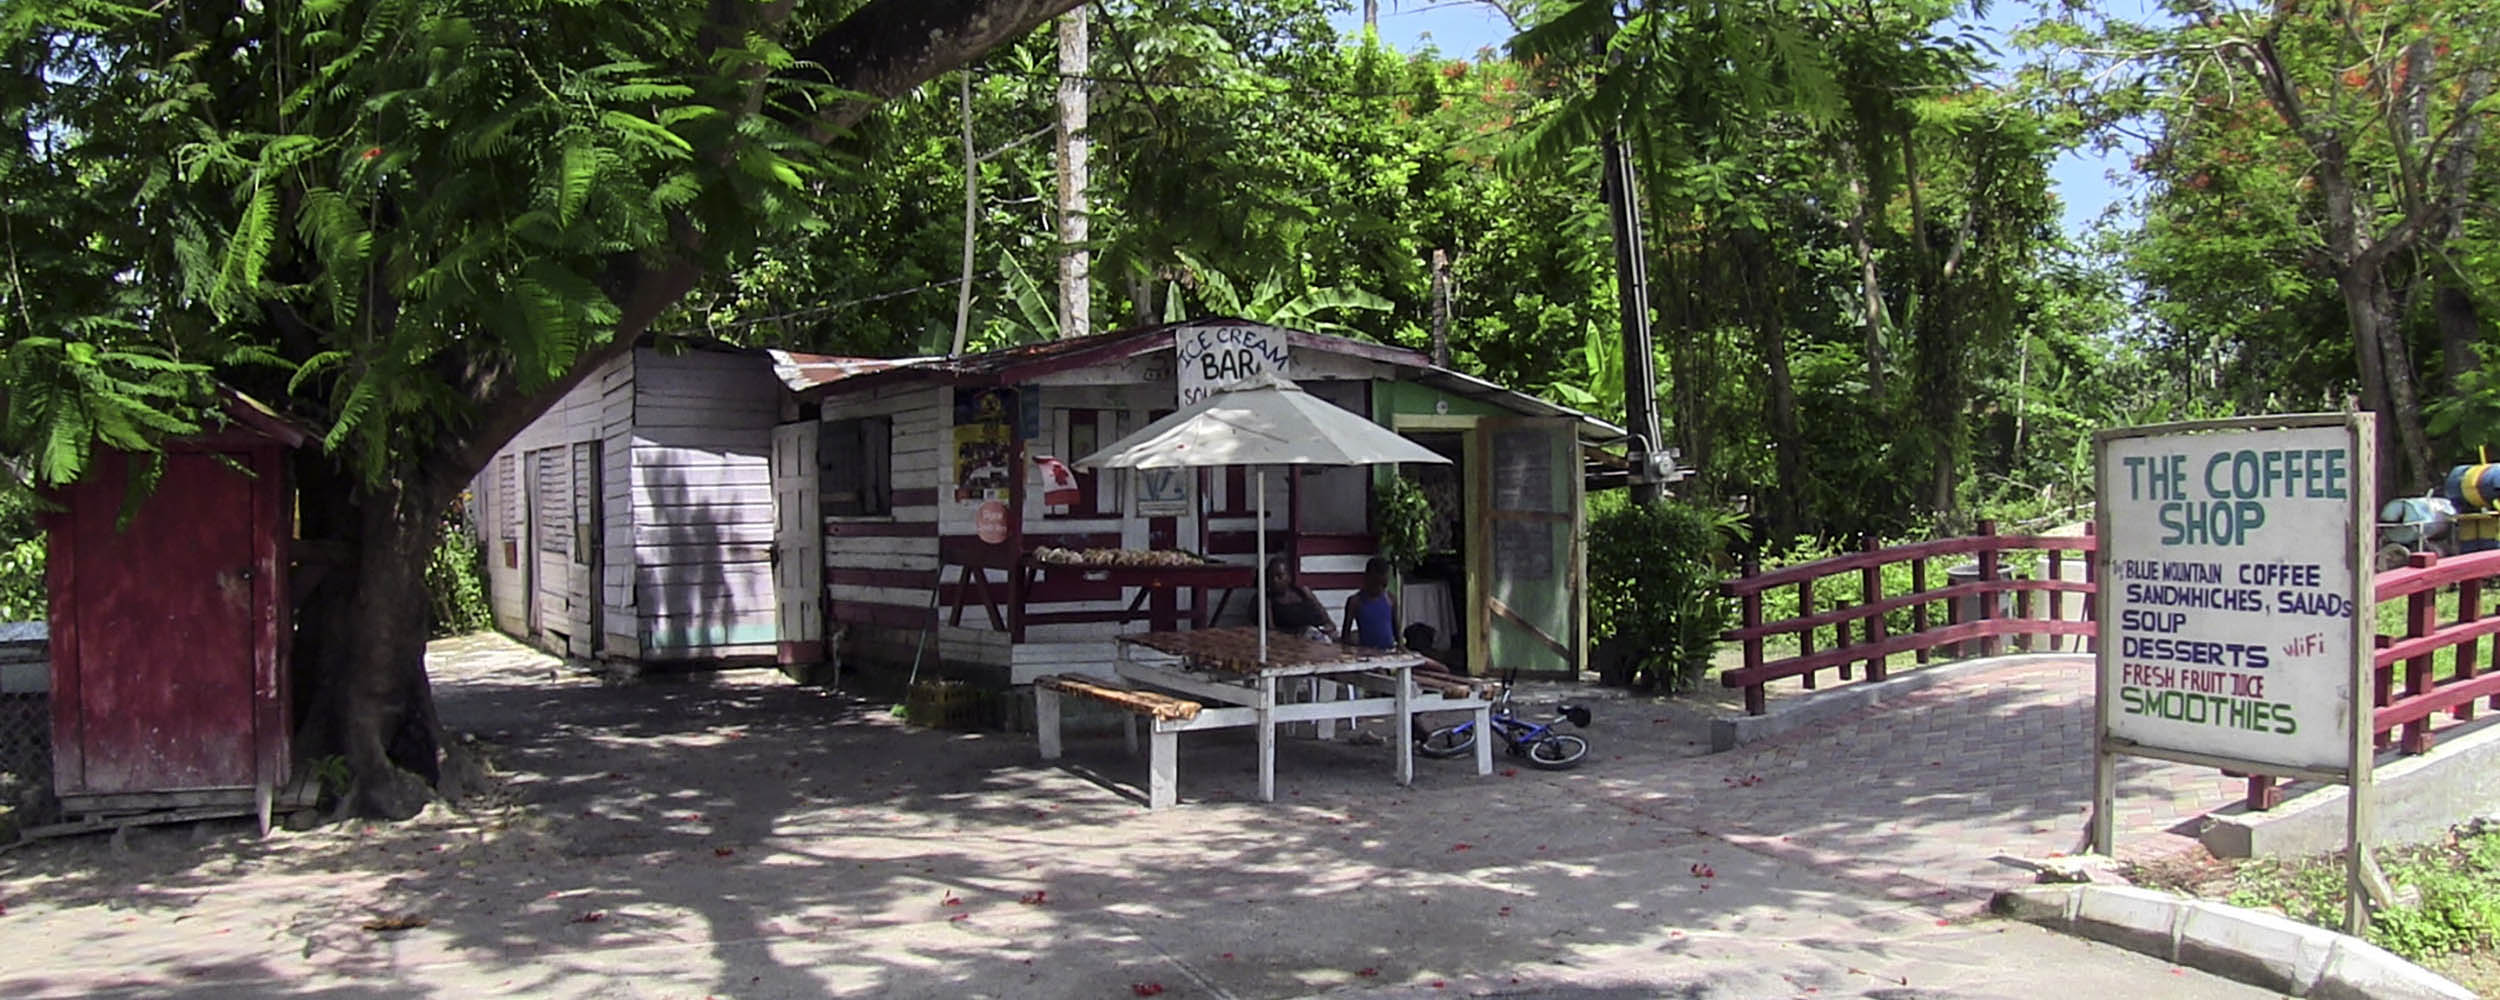 The Coffee Shop, Norman Manley Boulevard, Negril Jamaica